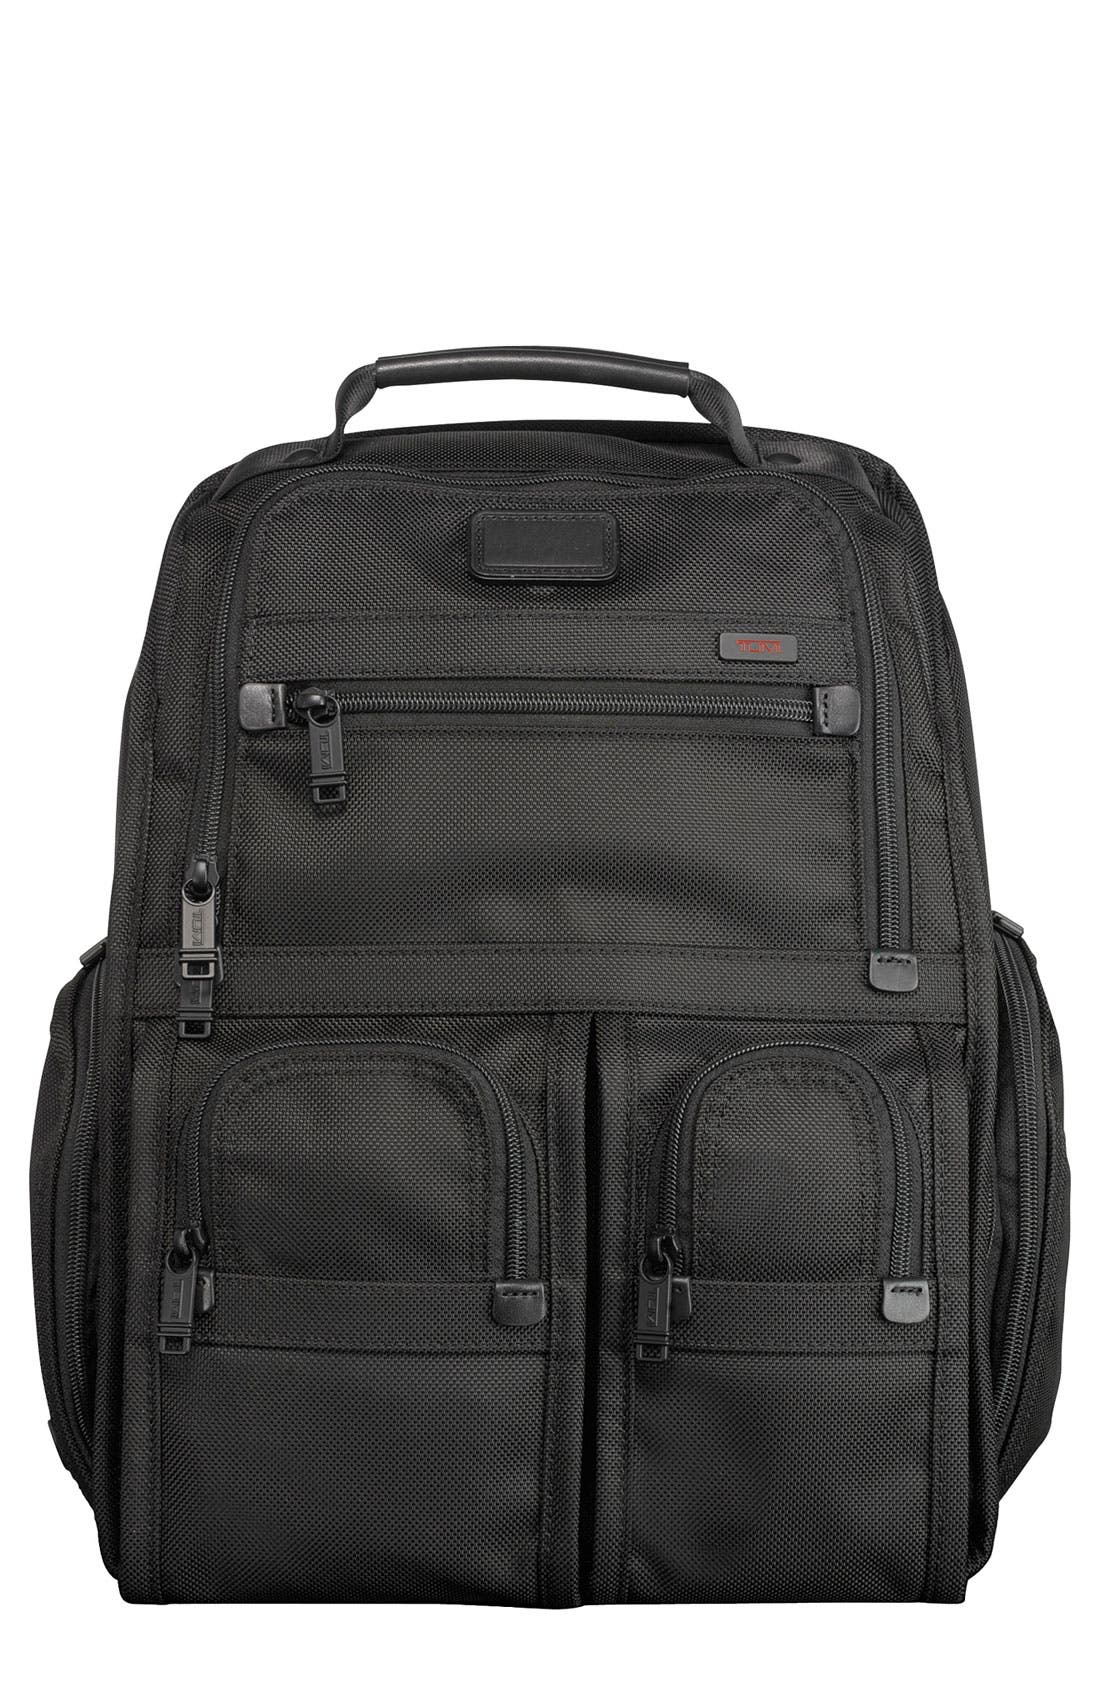 Alternate Image 1 Selected - Tumi 'Alpha' Compact Laptop BriefPack®